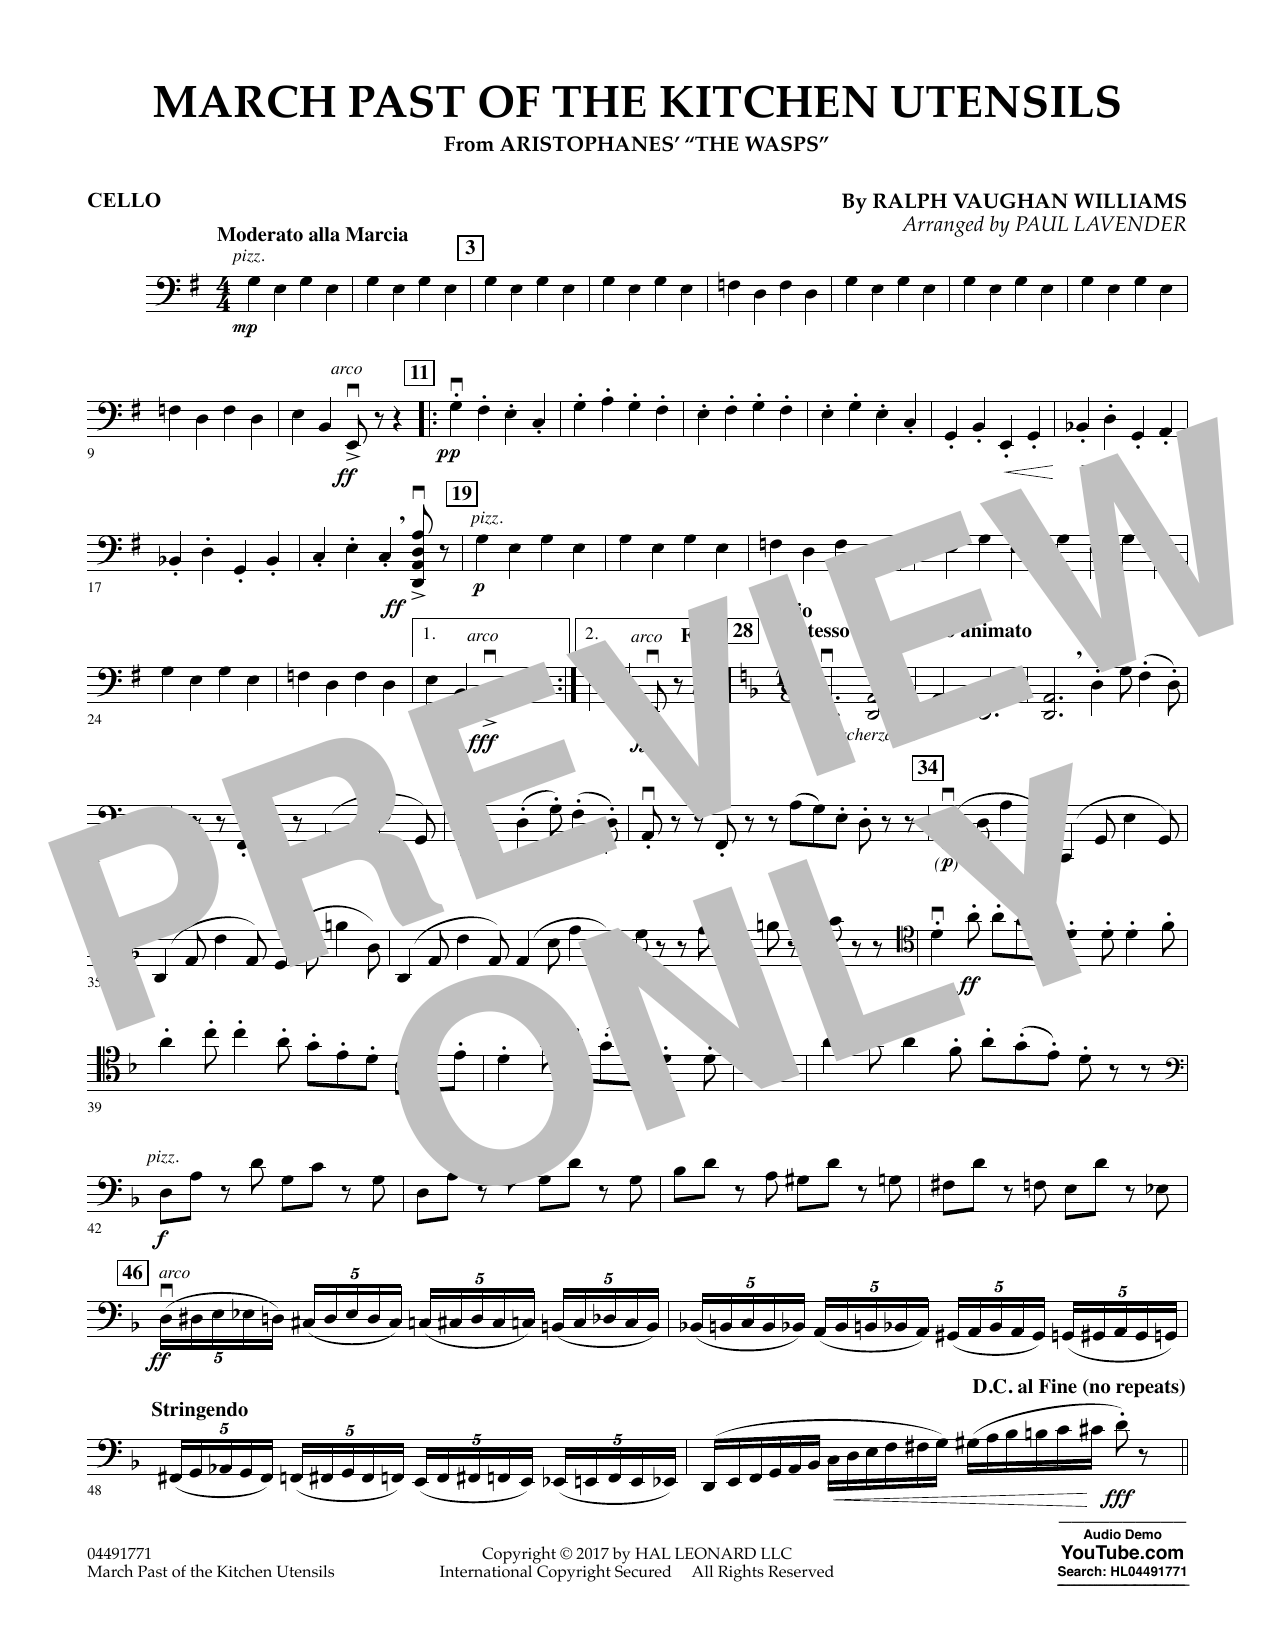 Paul Lavender March Past of the Kitchen Utensils (from The Wasps) - Cello sheet music notes and chords. Download Printable PDF.